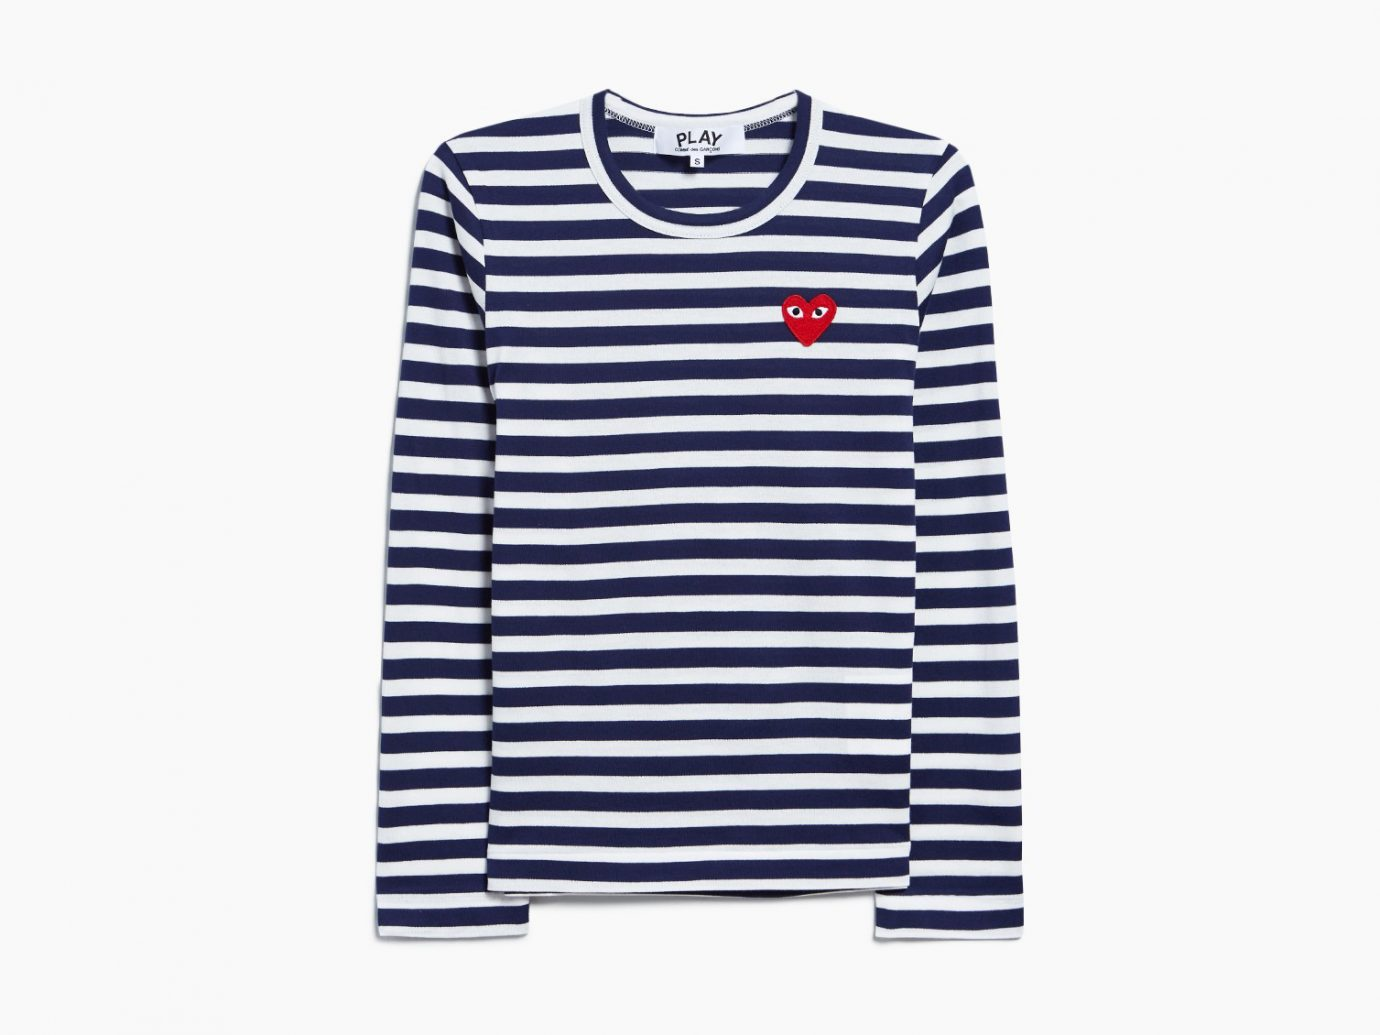 striped long sleeve tee, Comme des Garçons Play Striped T-Shirt in Navy